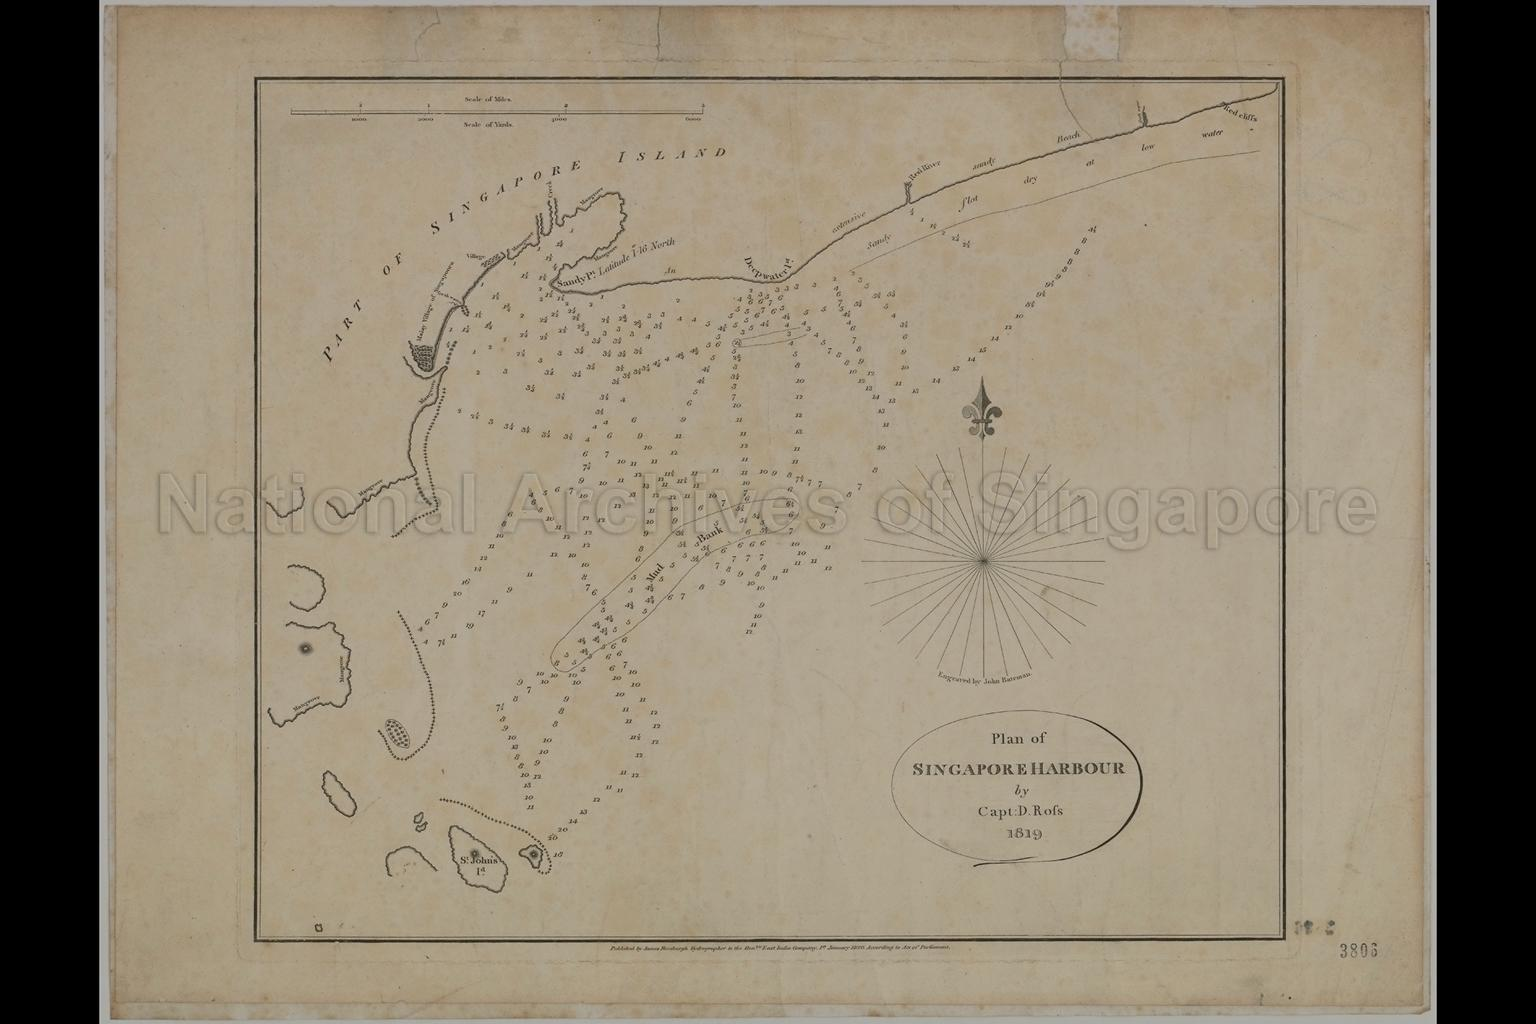 Plan Of Singapore Harbour By Captain D. Ross (Rofs)